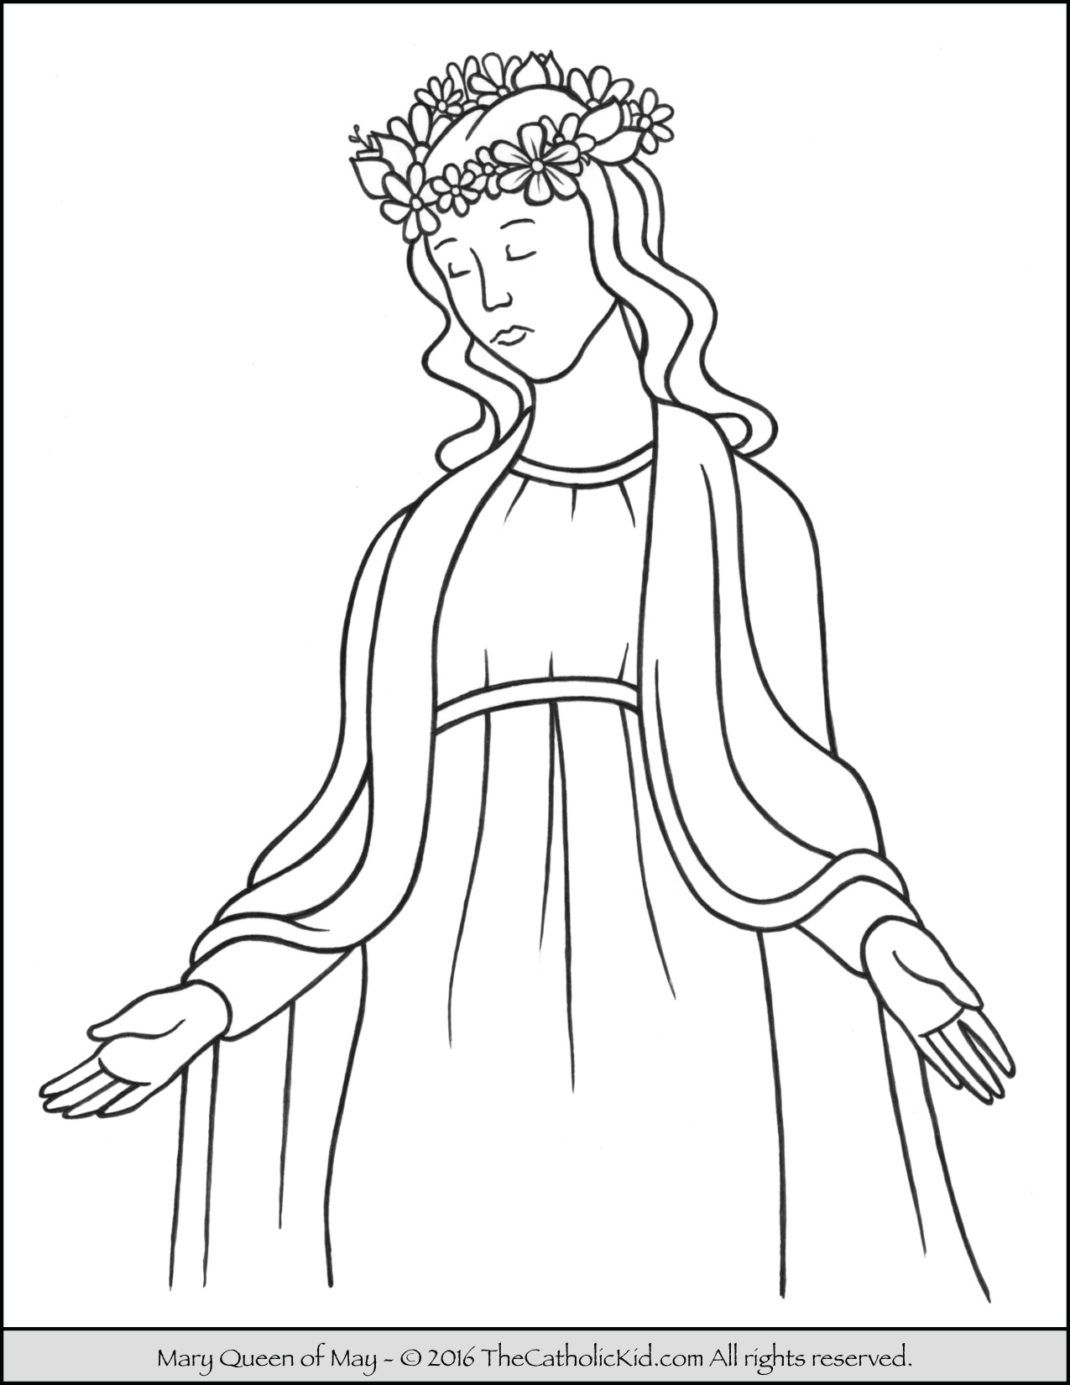 mary coloring pages catholic church - photo#26